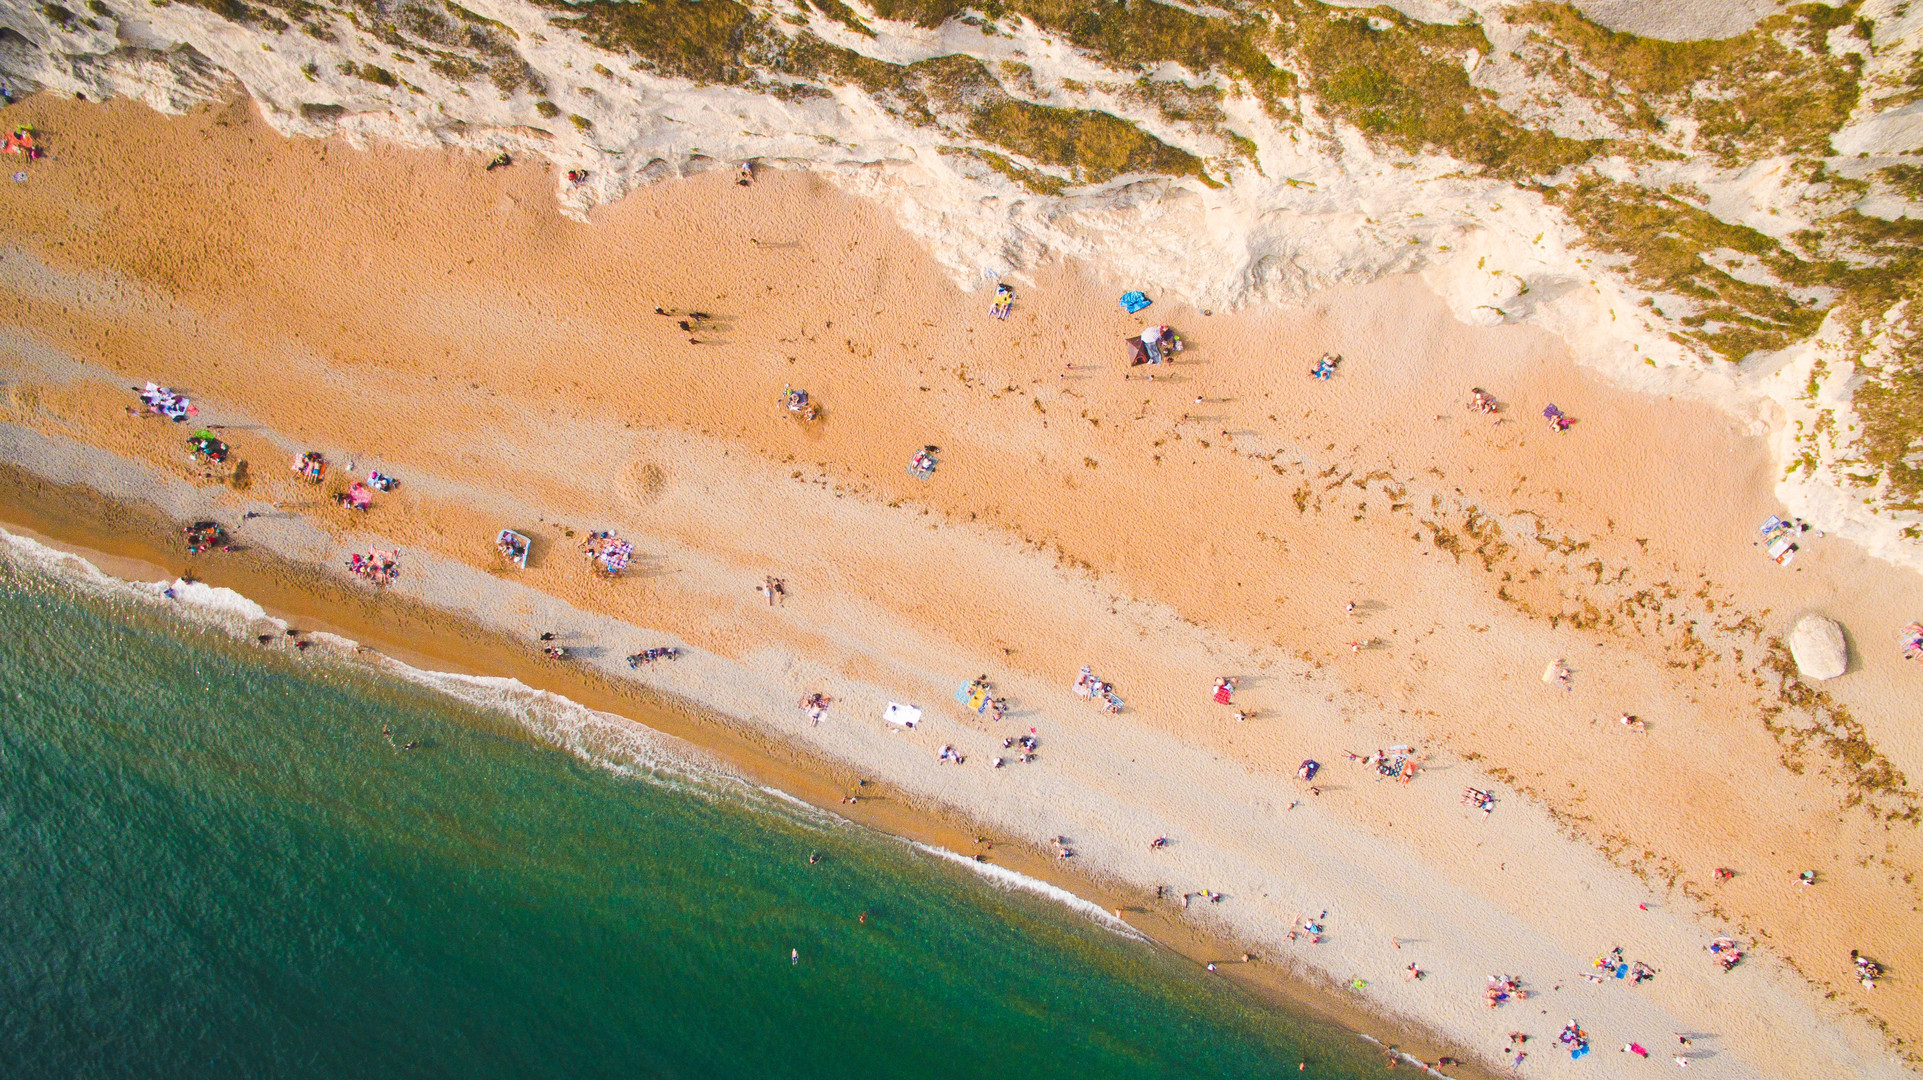 Aerial Photo of a Beach